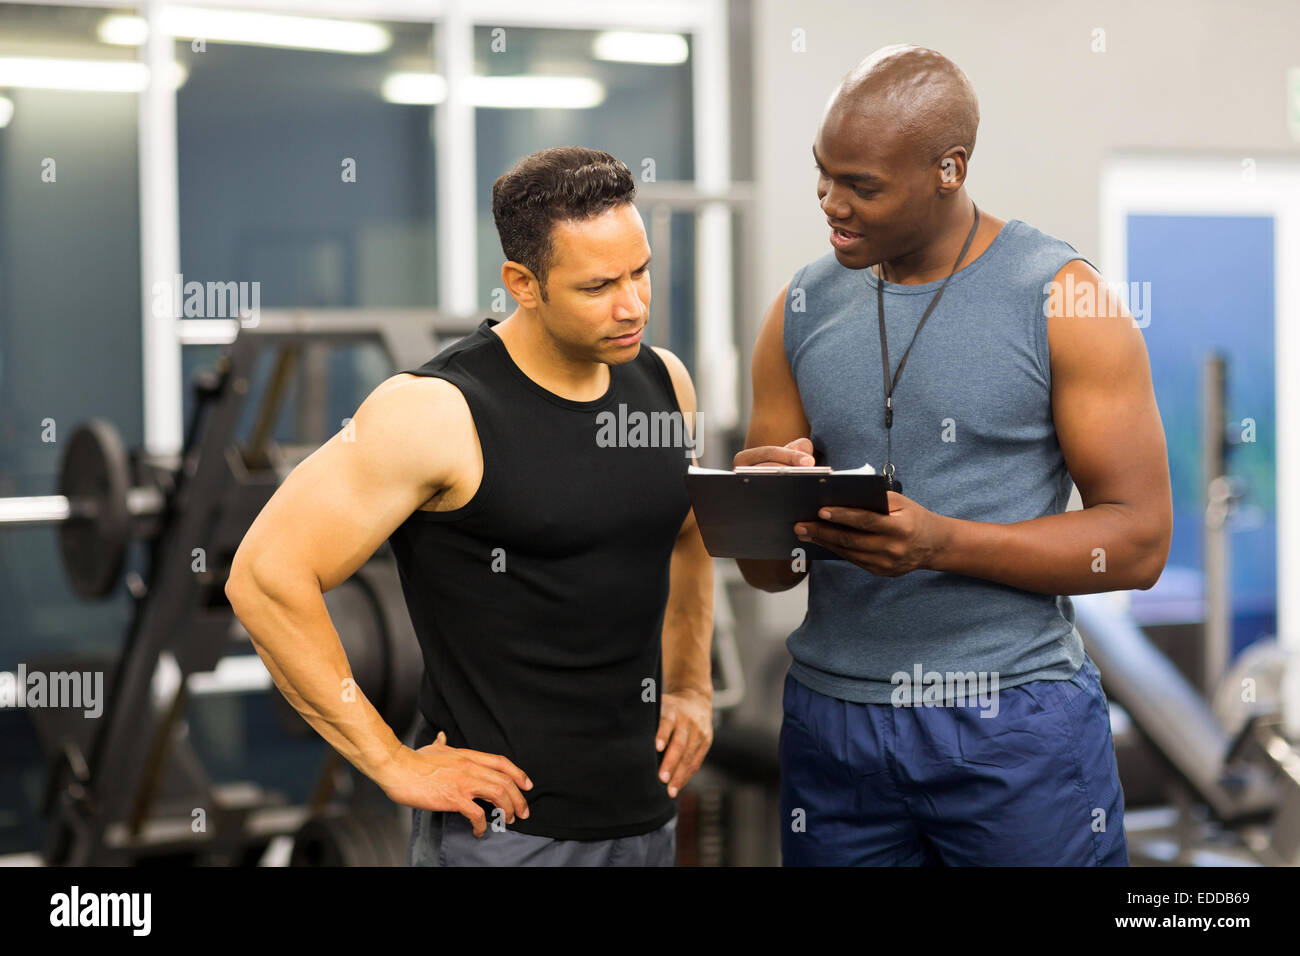 Guys Gym Male Stock Photos  Guys Gym Male Stock Images -5498